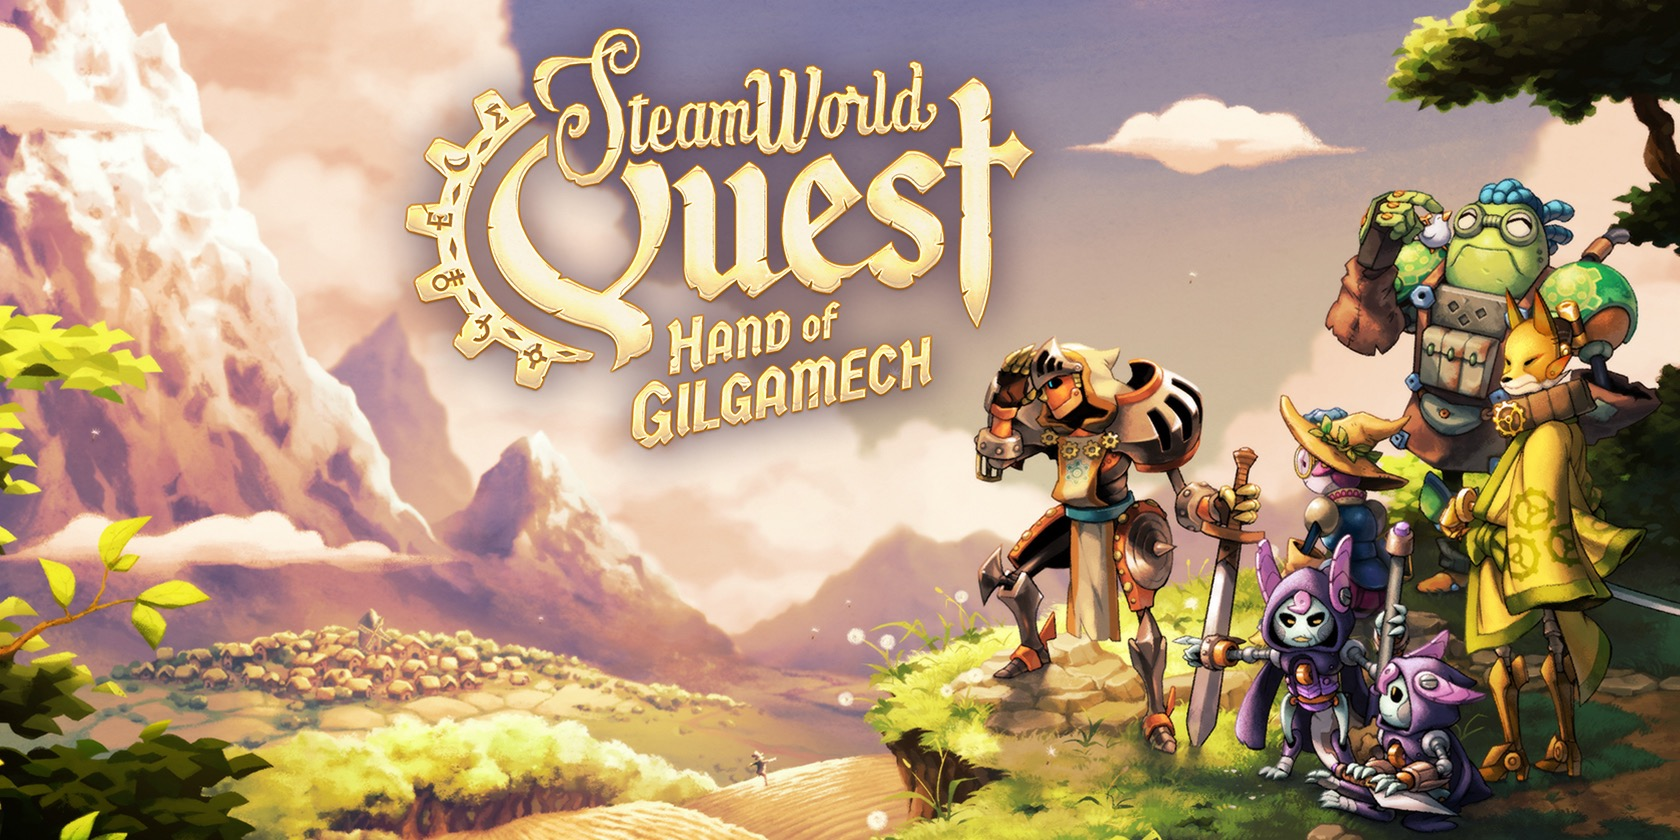 Switch eShop sale from $1: SteamWorld Quest, Brothers, Wonder Boy